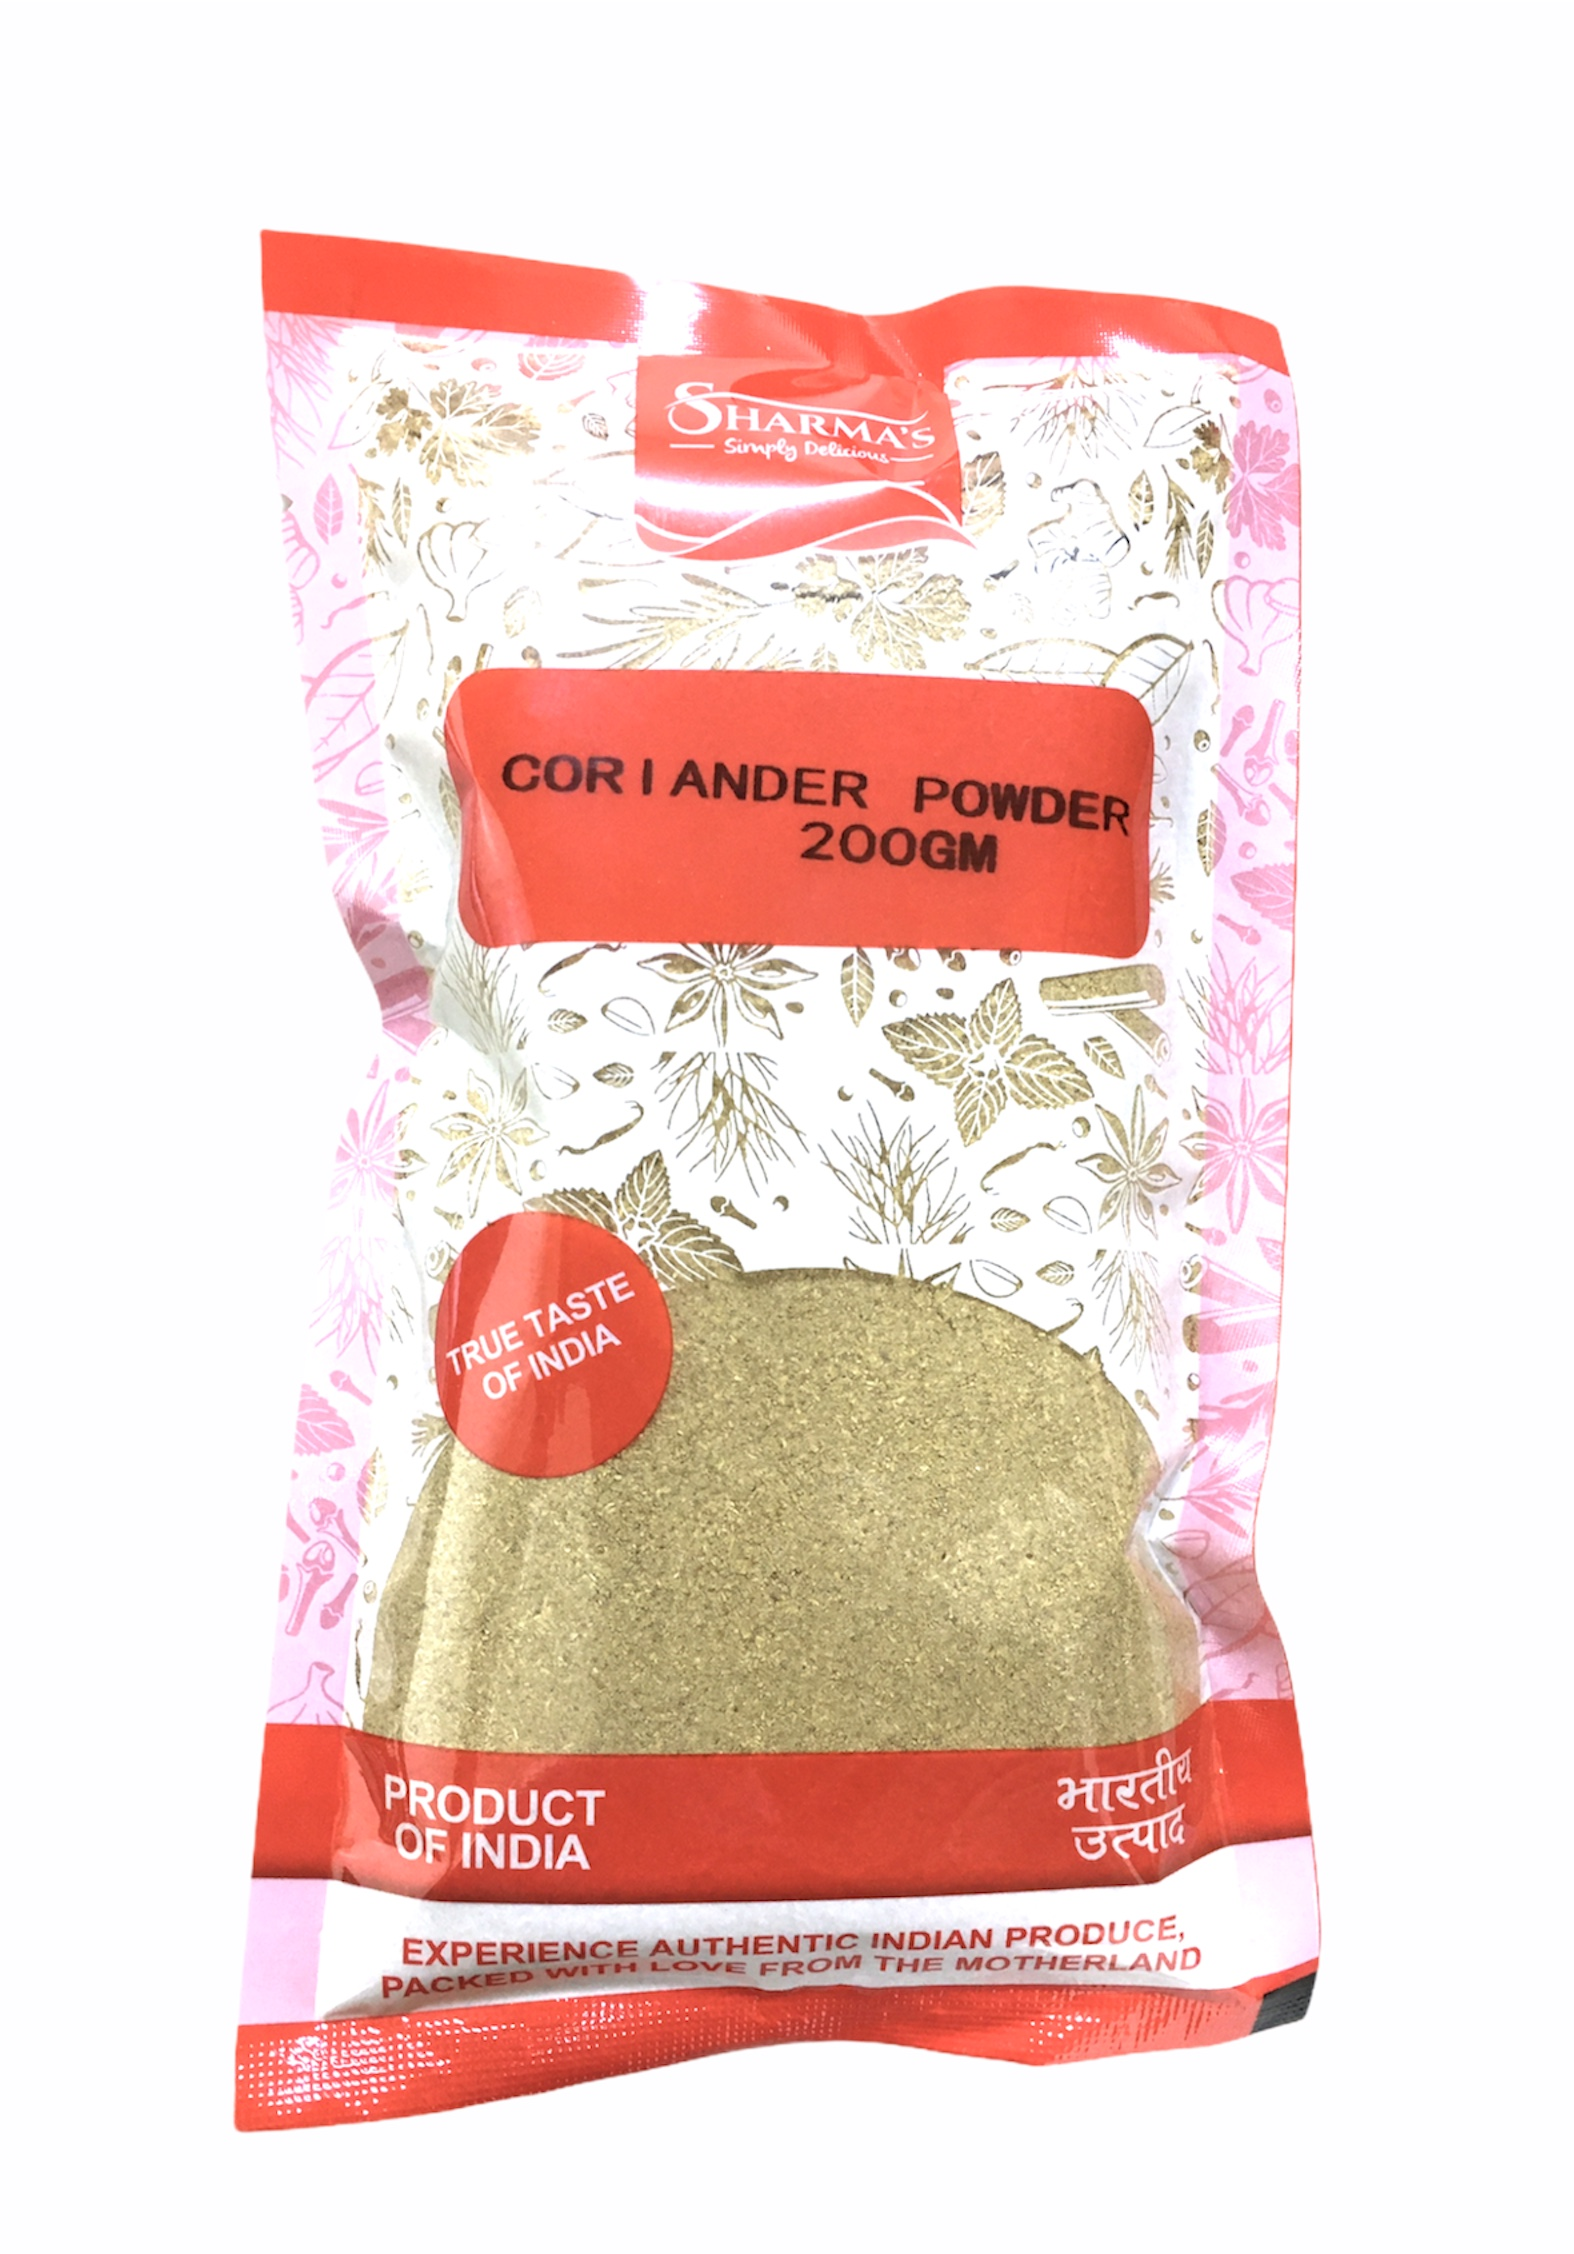 SHARMA'S Coriander Powder 200g